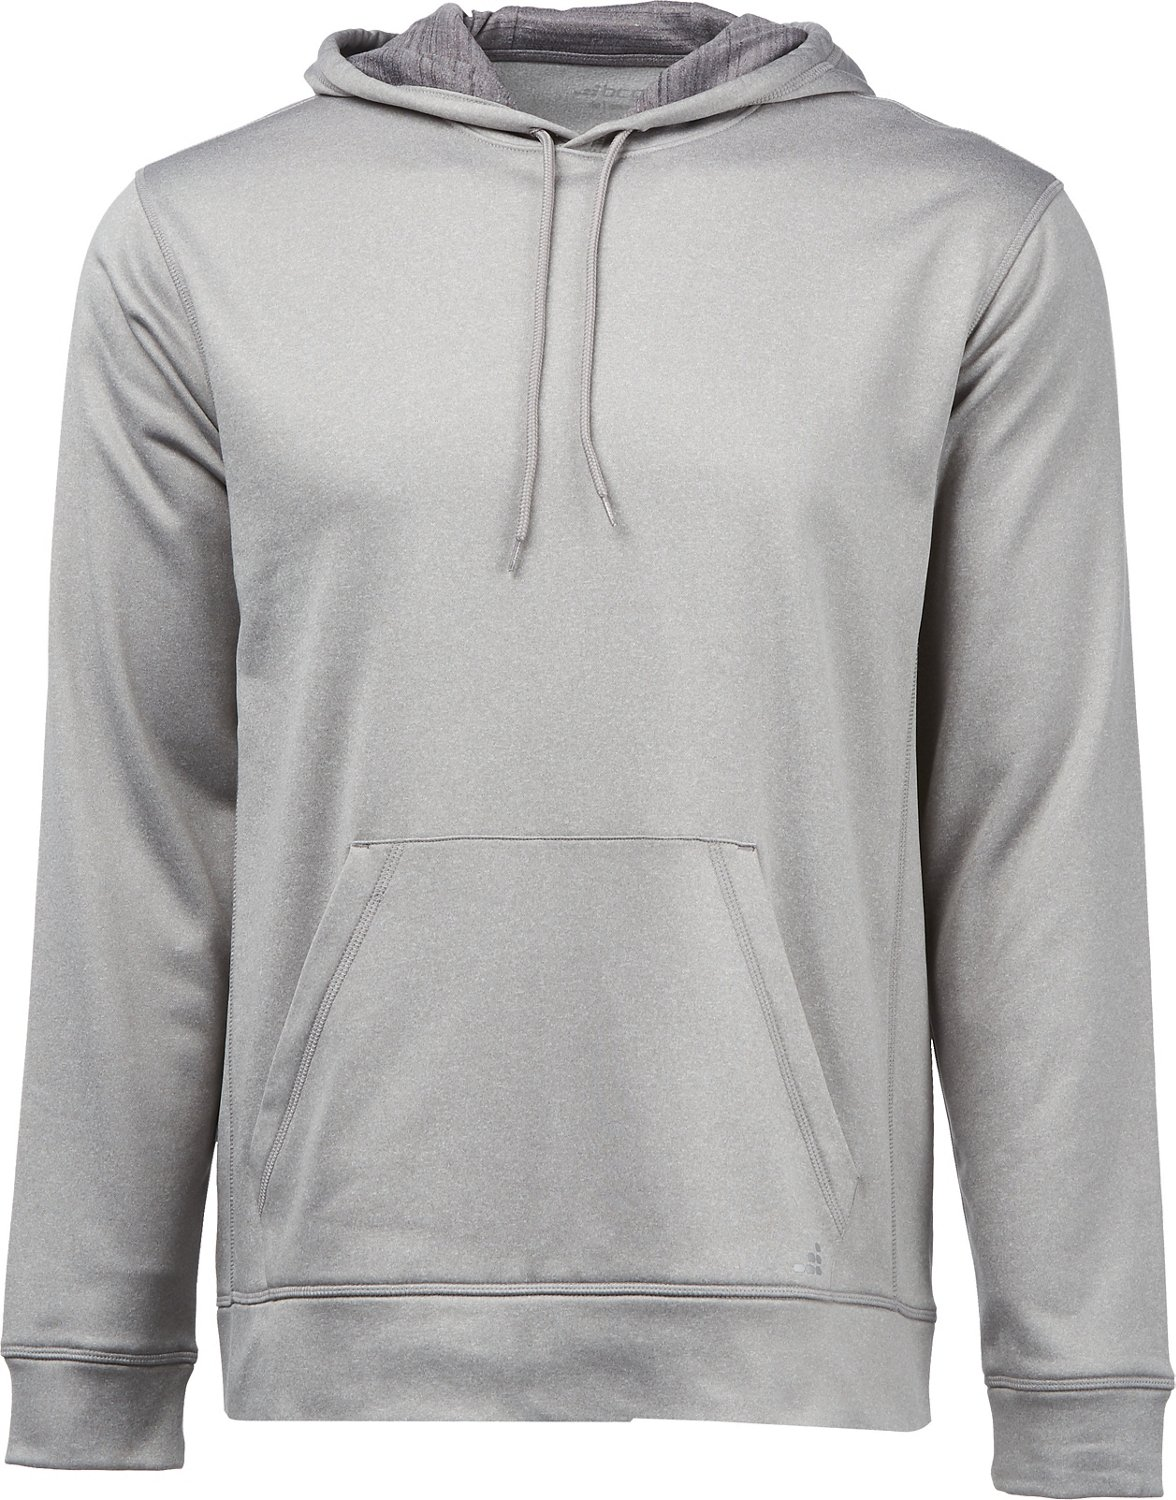 fb8d81e3 Display product reviews for BCG Men's Athletic Performance Hoodie